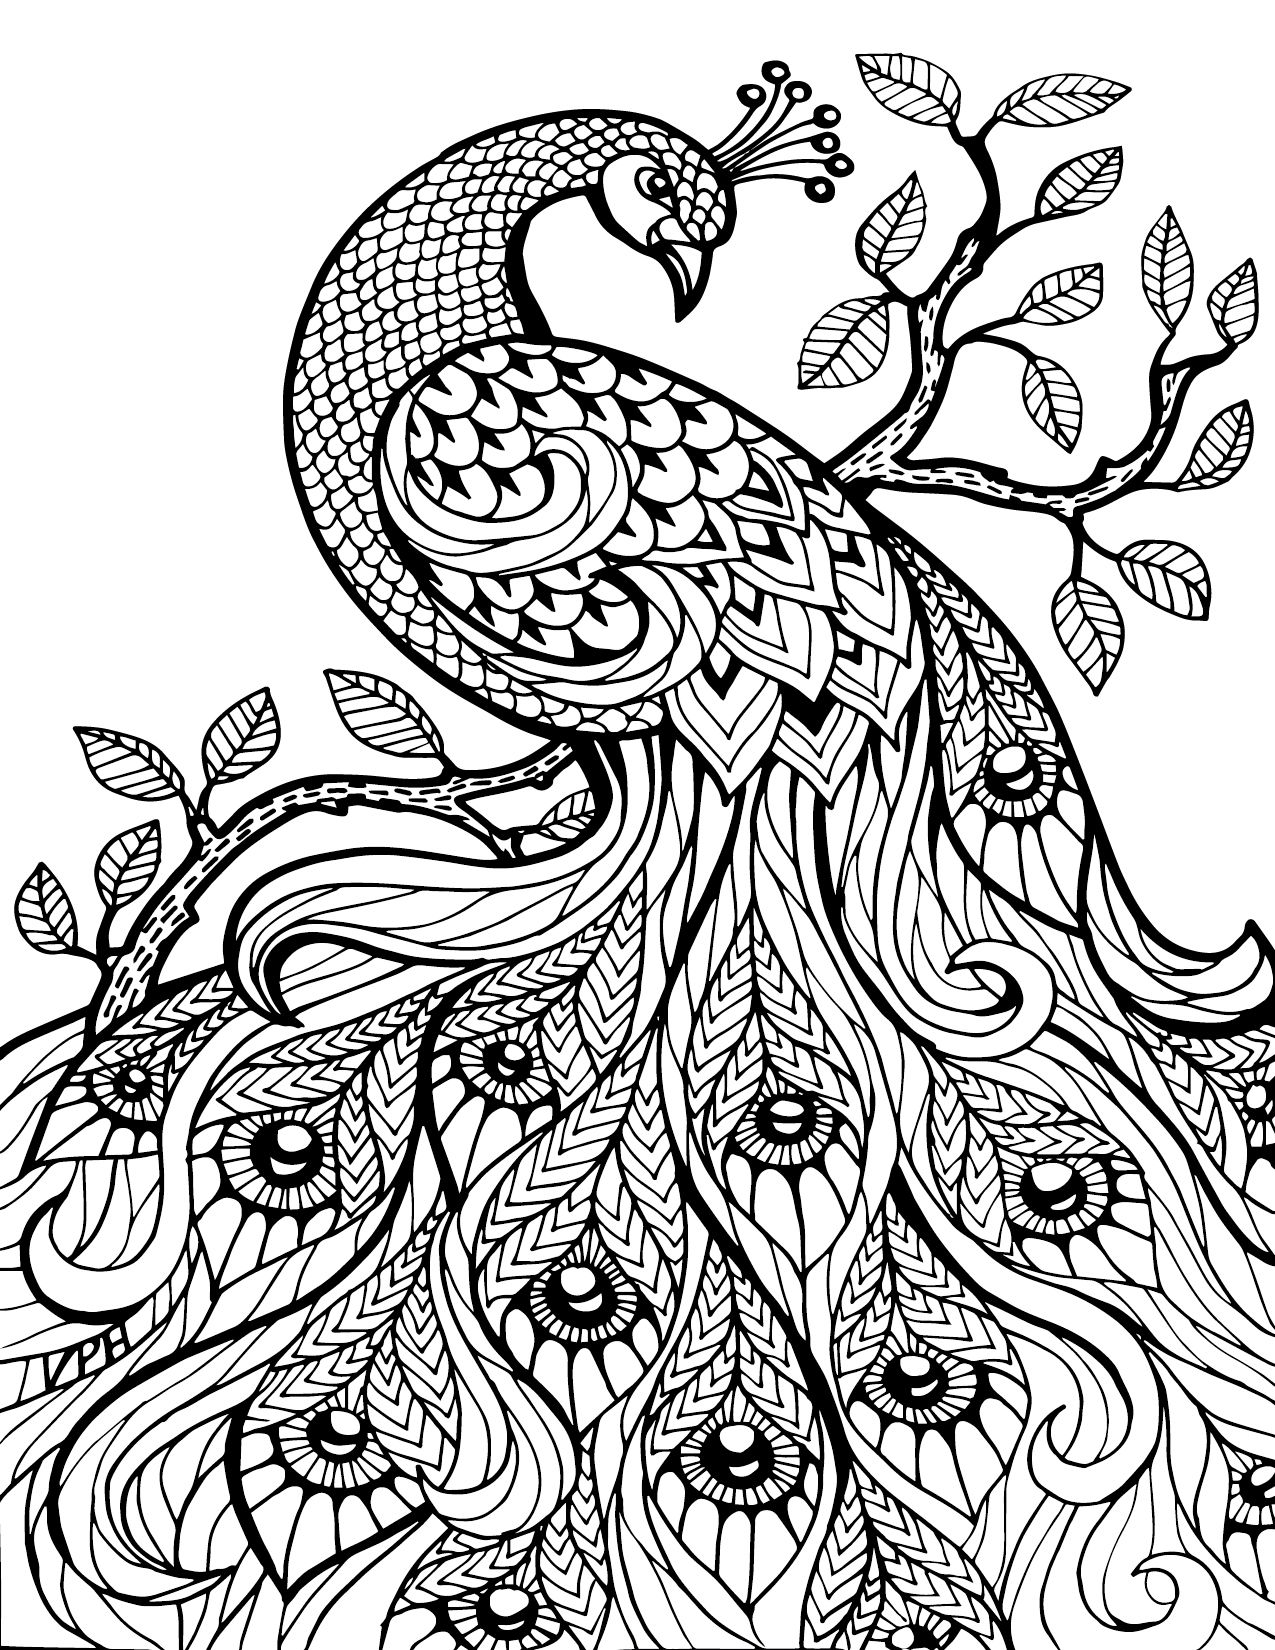 Colouring in for adults why - Free Printable Coloring Pages For Adults Only Image 36 Art Davlin Publishing